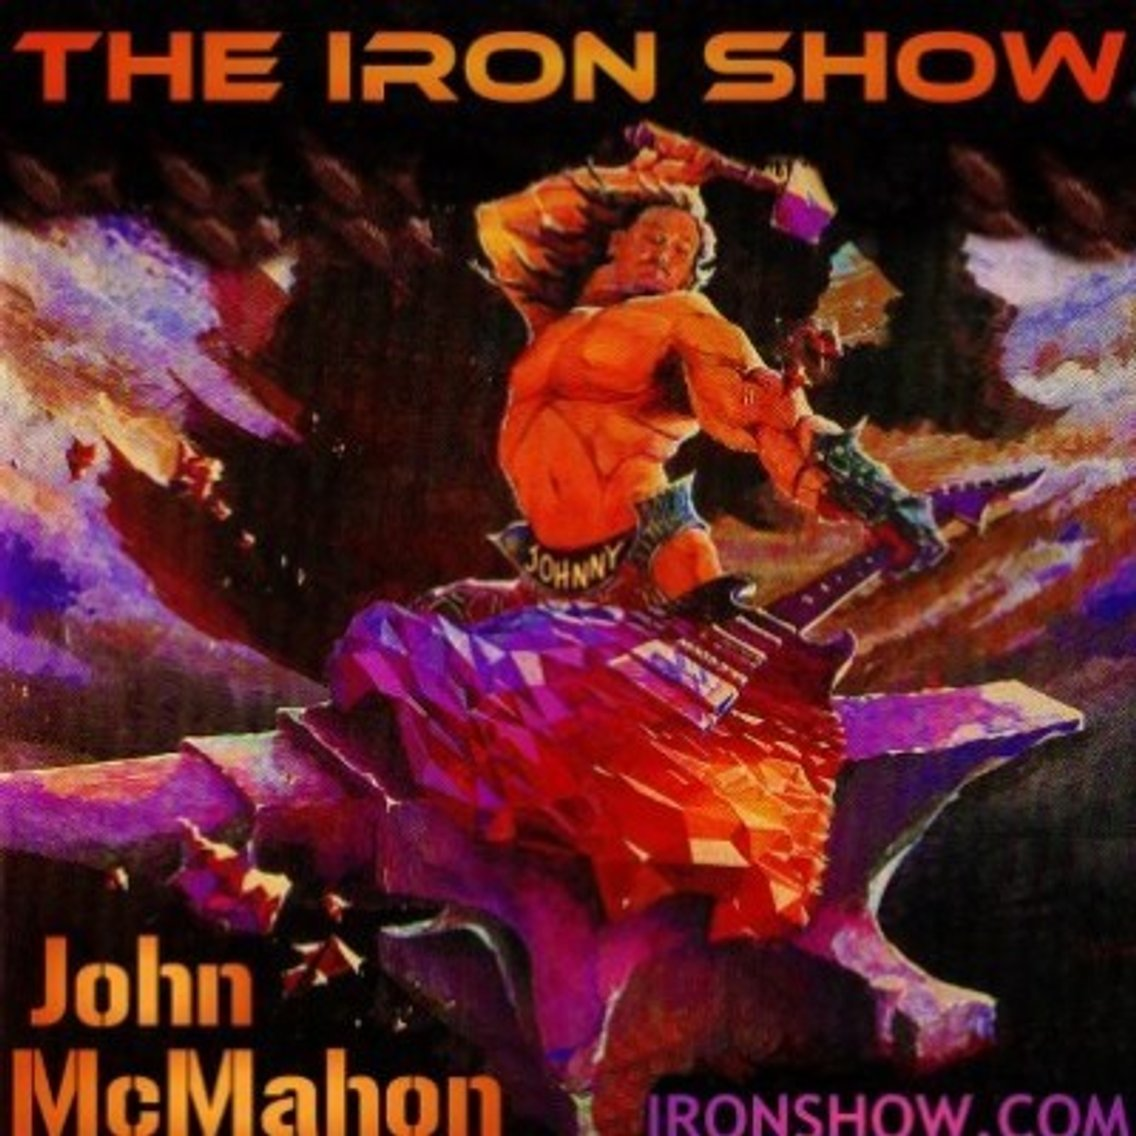 IRON SHOW - Cover Image